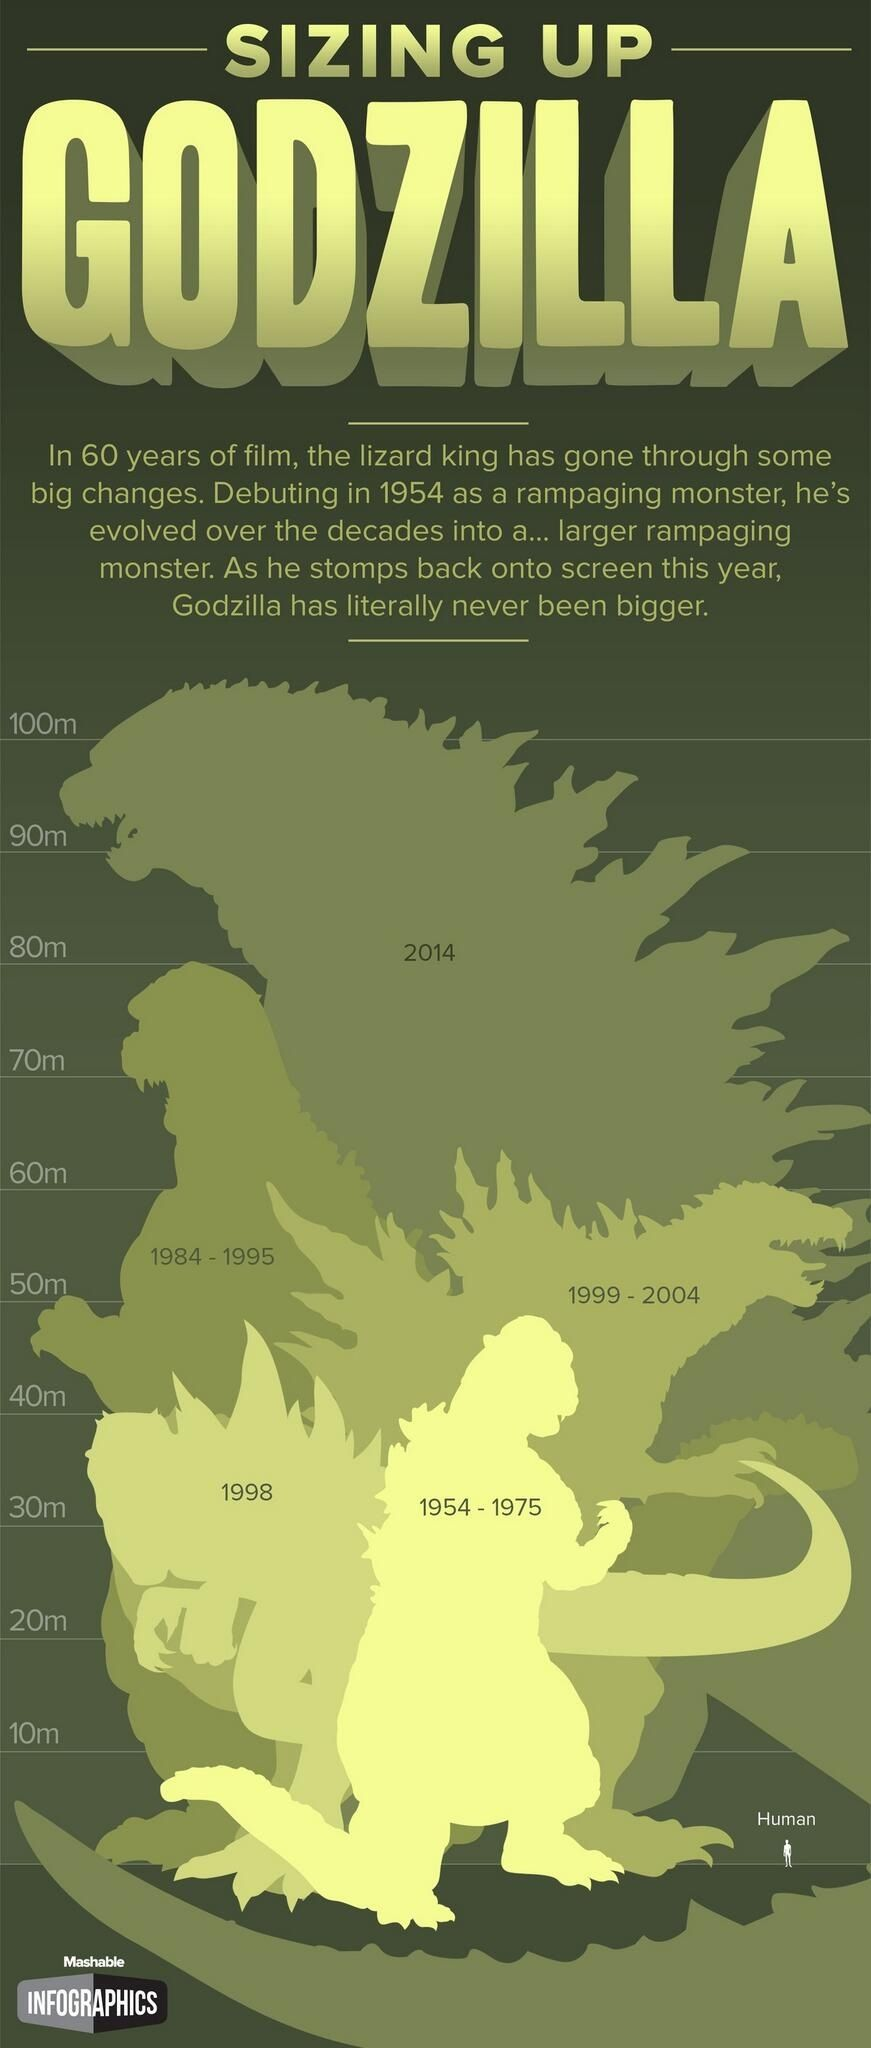 Godzilla sizes though all of the Godzilla moves